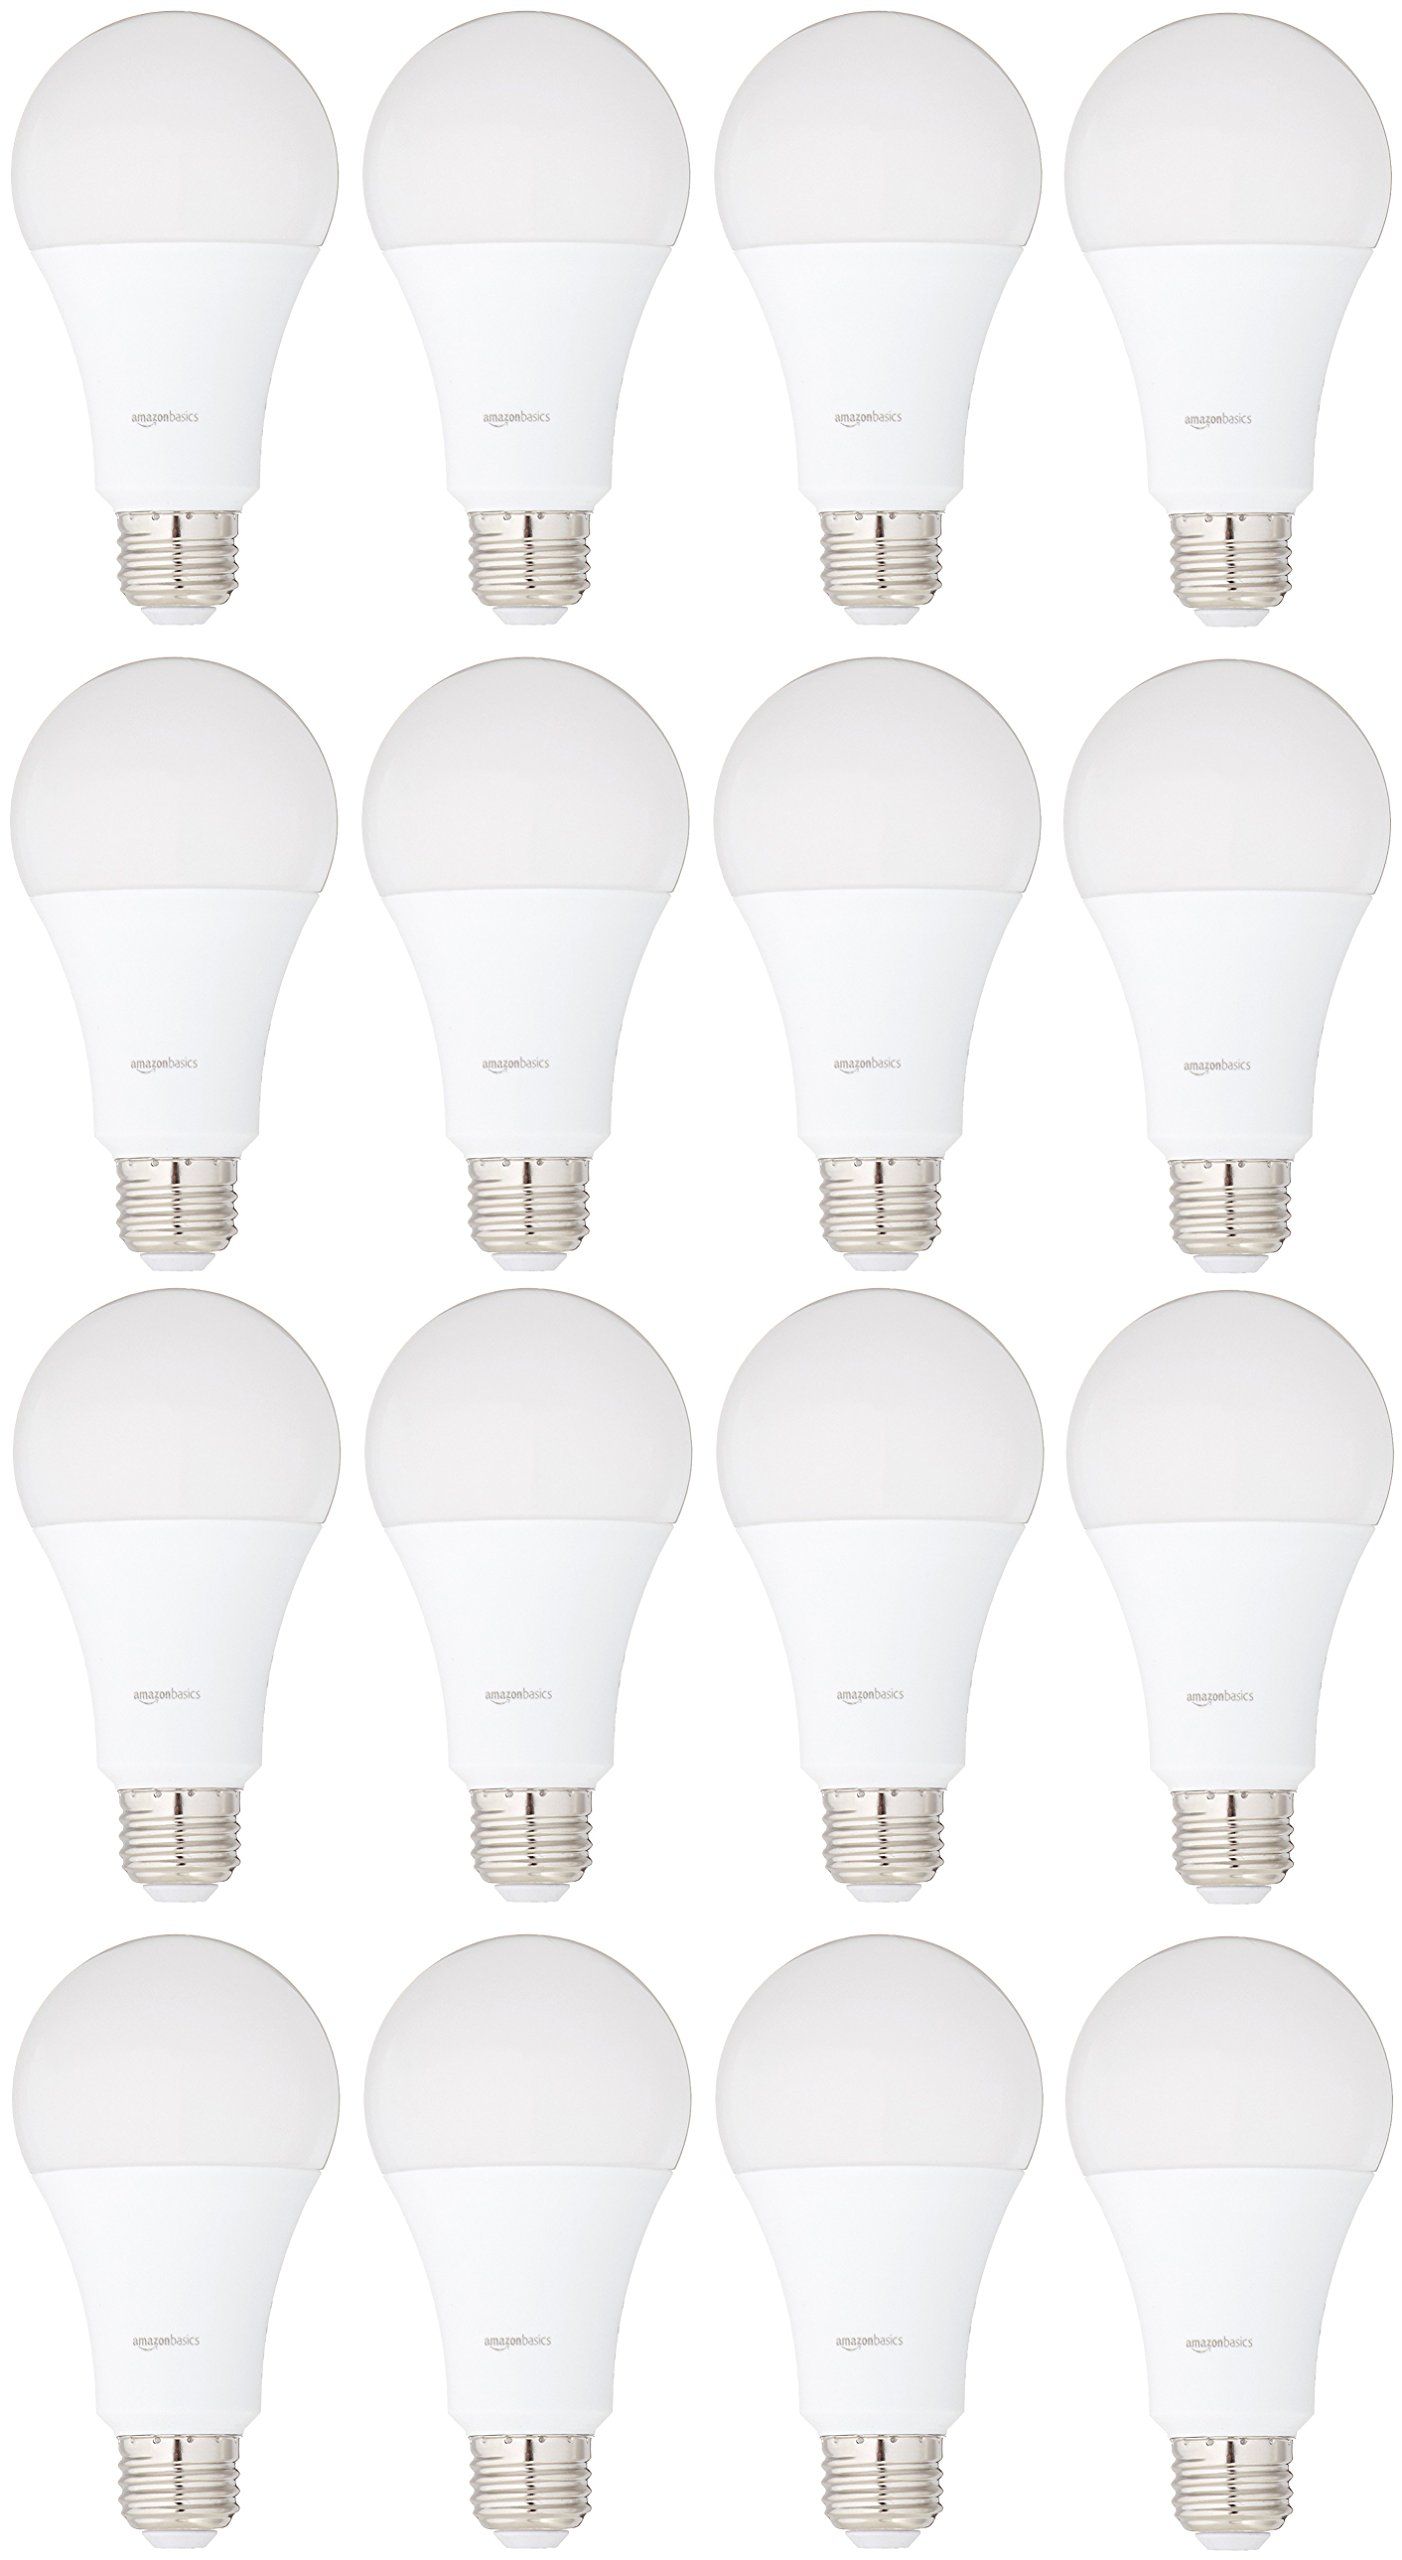 AmazonBasics 100 Watt Equivalent, Soft White, Dimmable, A21 LED Light Bulb, 16-Pack